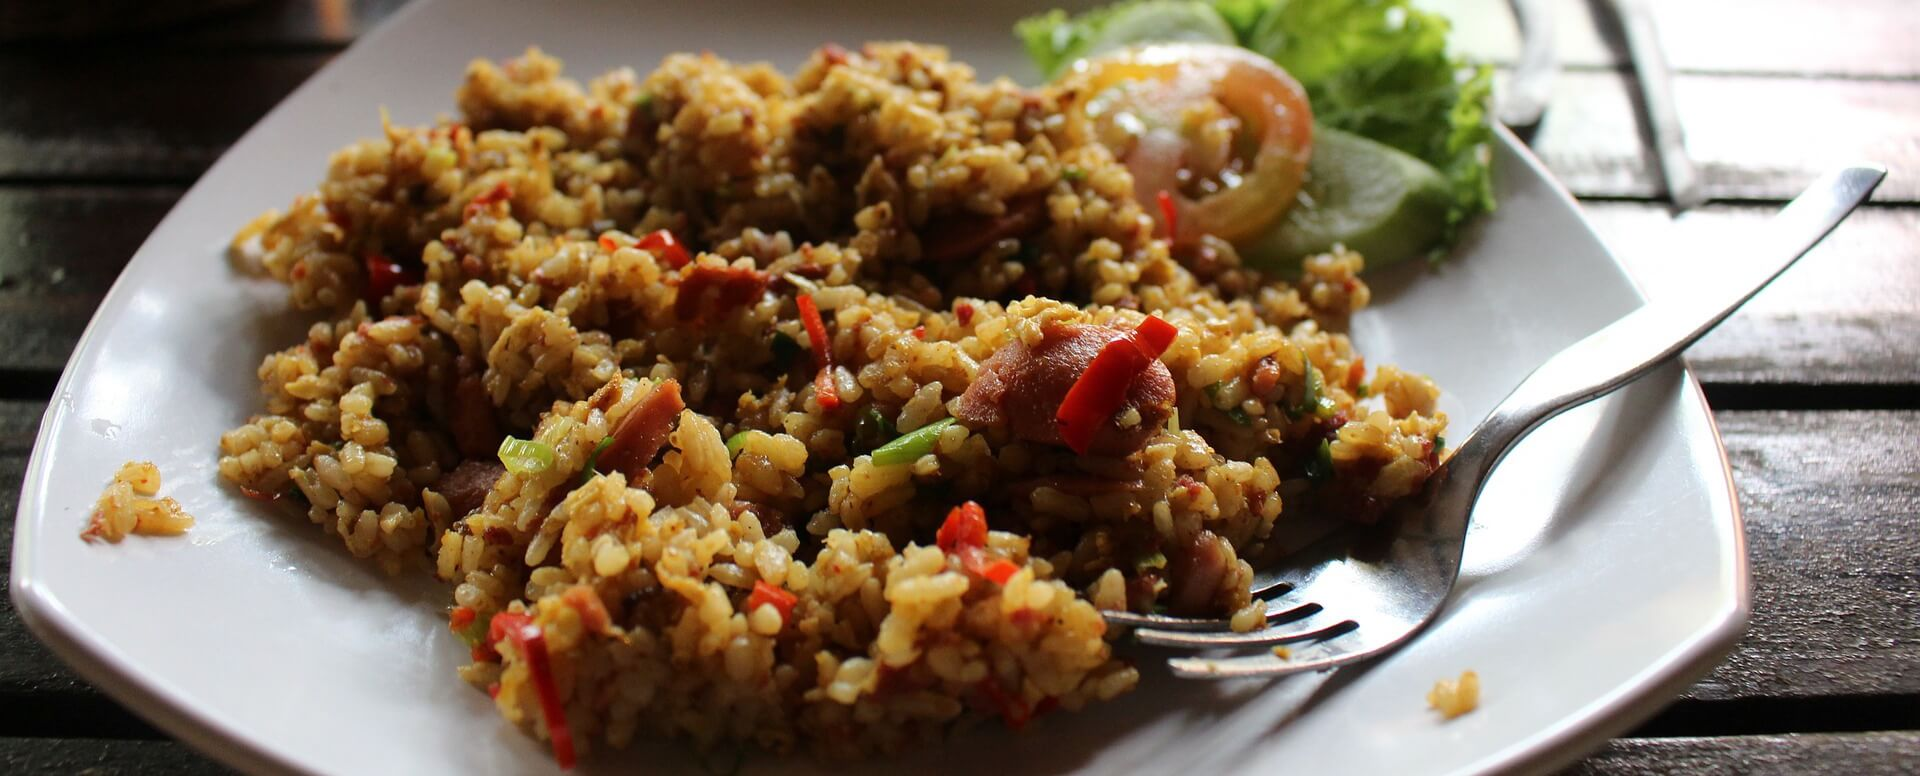 Typical and popular dishes - Indonesia